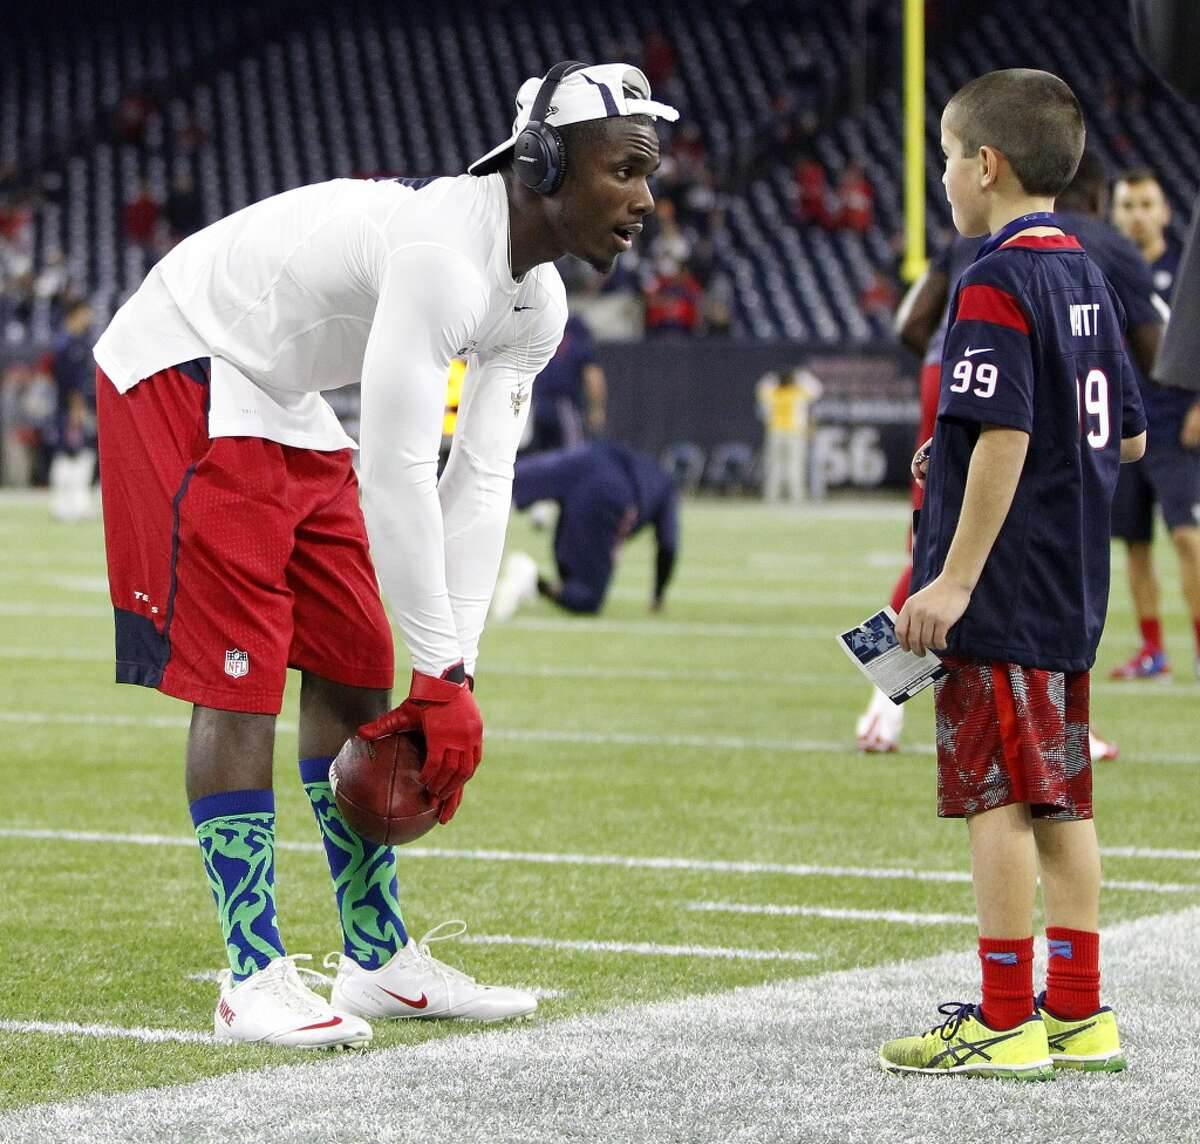 Houston Texans defensive back Charles James wears his new line of socks from Balitello Socks as he talks to a young fan before the start of an NFL football game at NRG Stadium on Sunday, Dec. 13, 2015, in Houston . ( Karen Warren / Houston Chronicle )